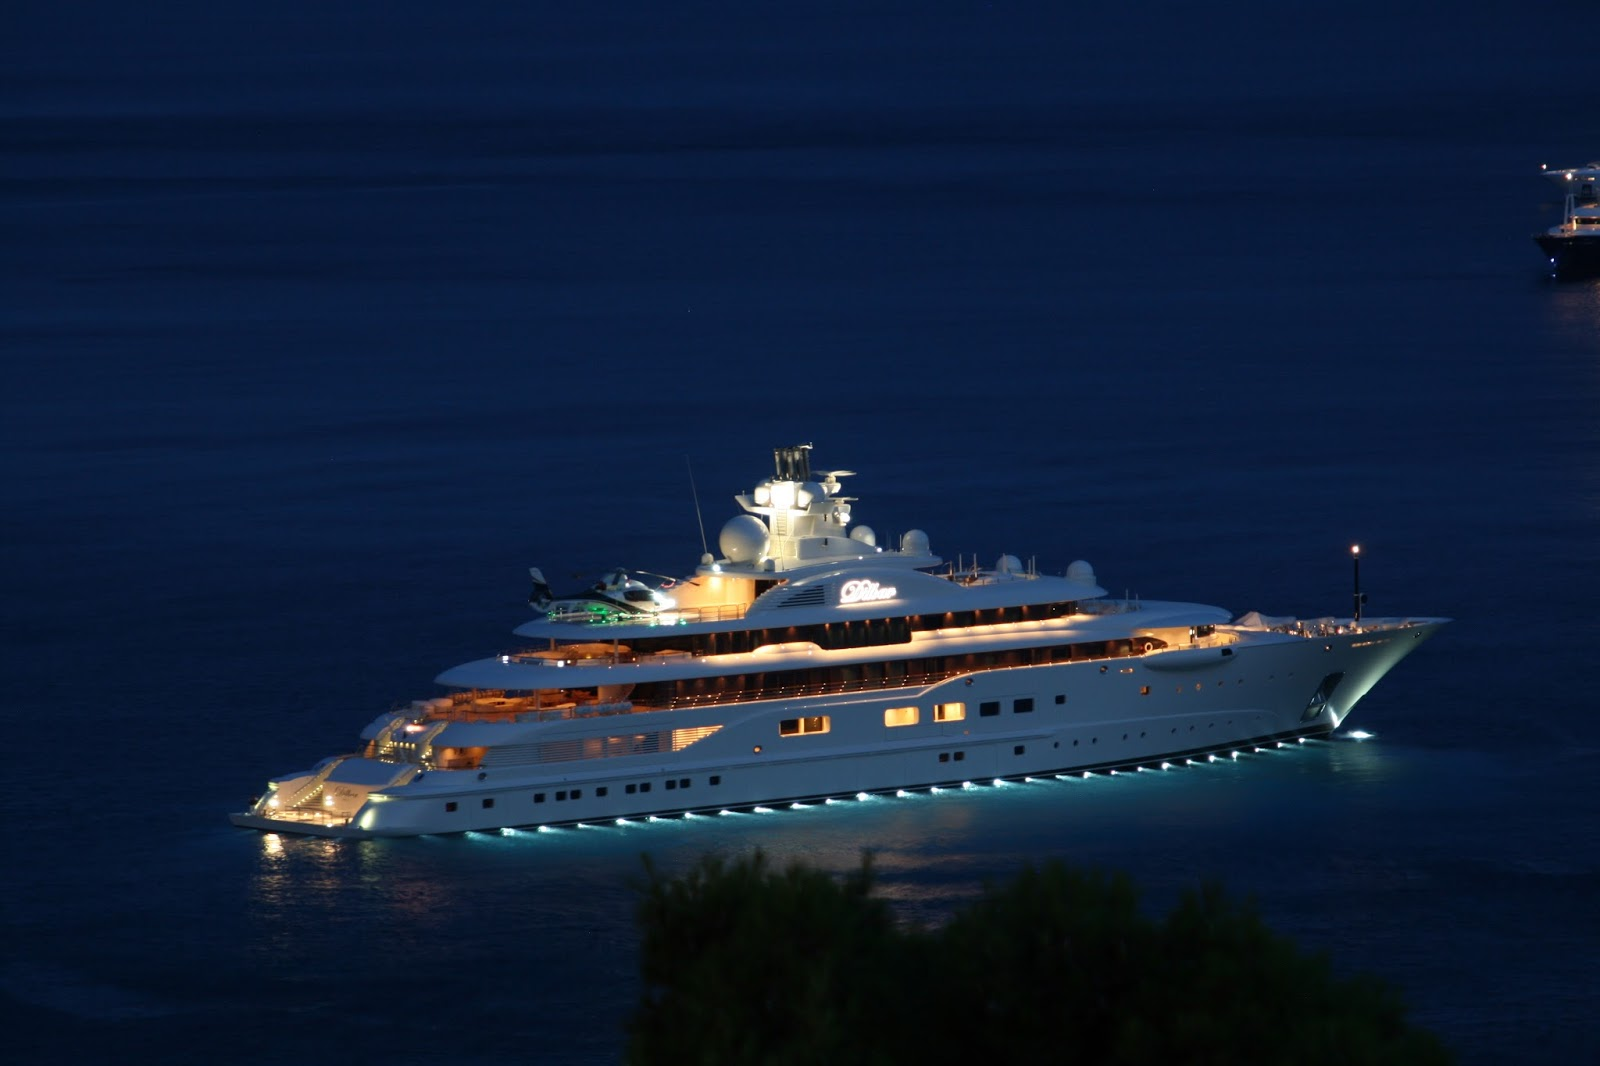 Ona Superyacht Photos Marine Vessel Traffic